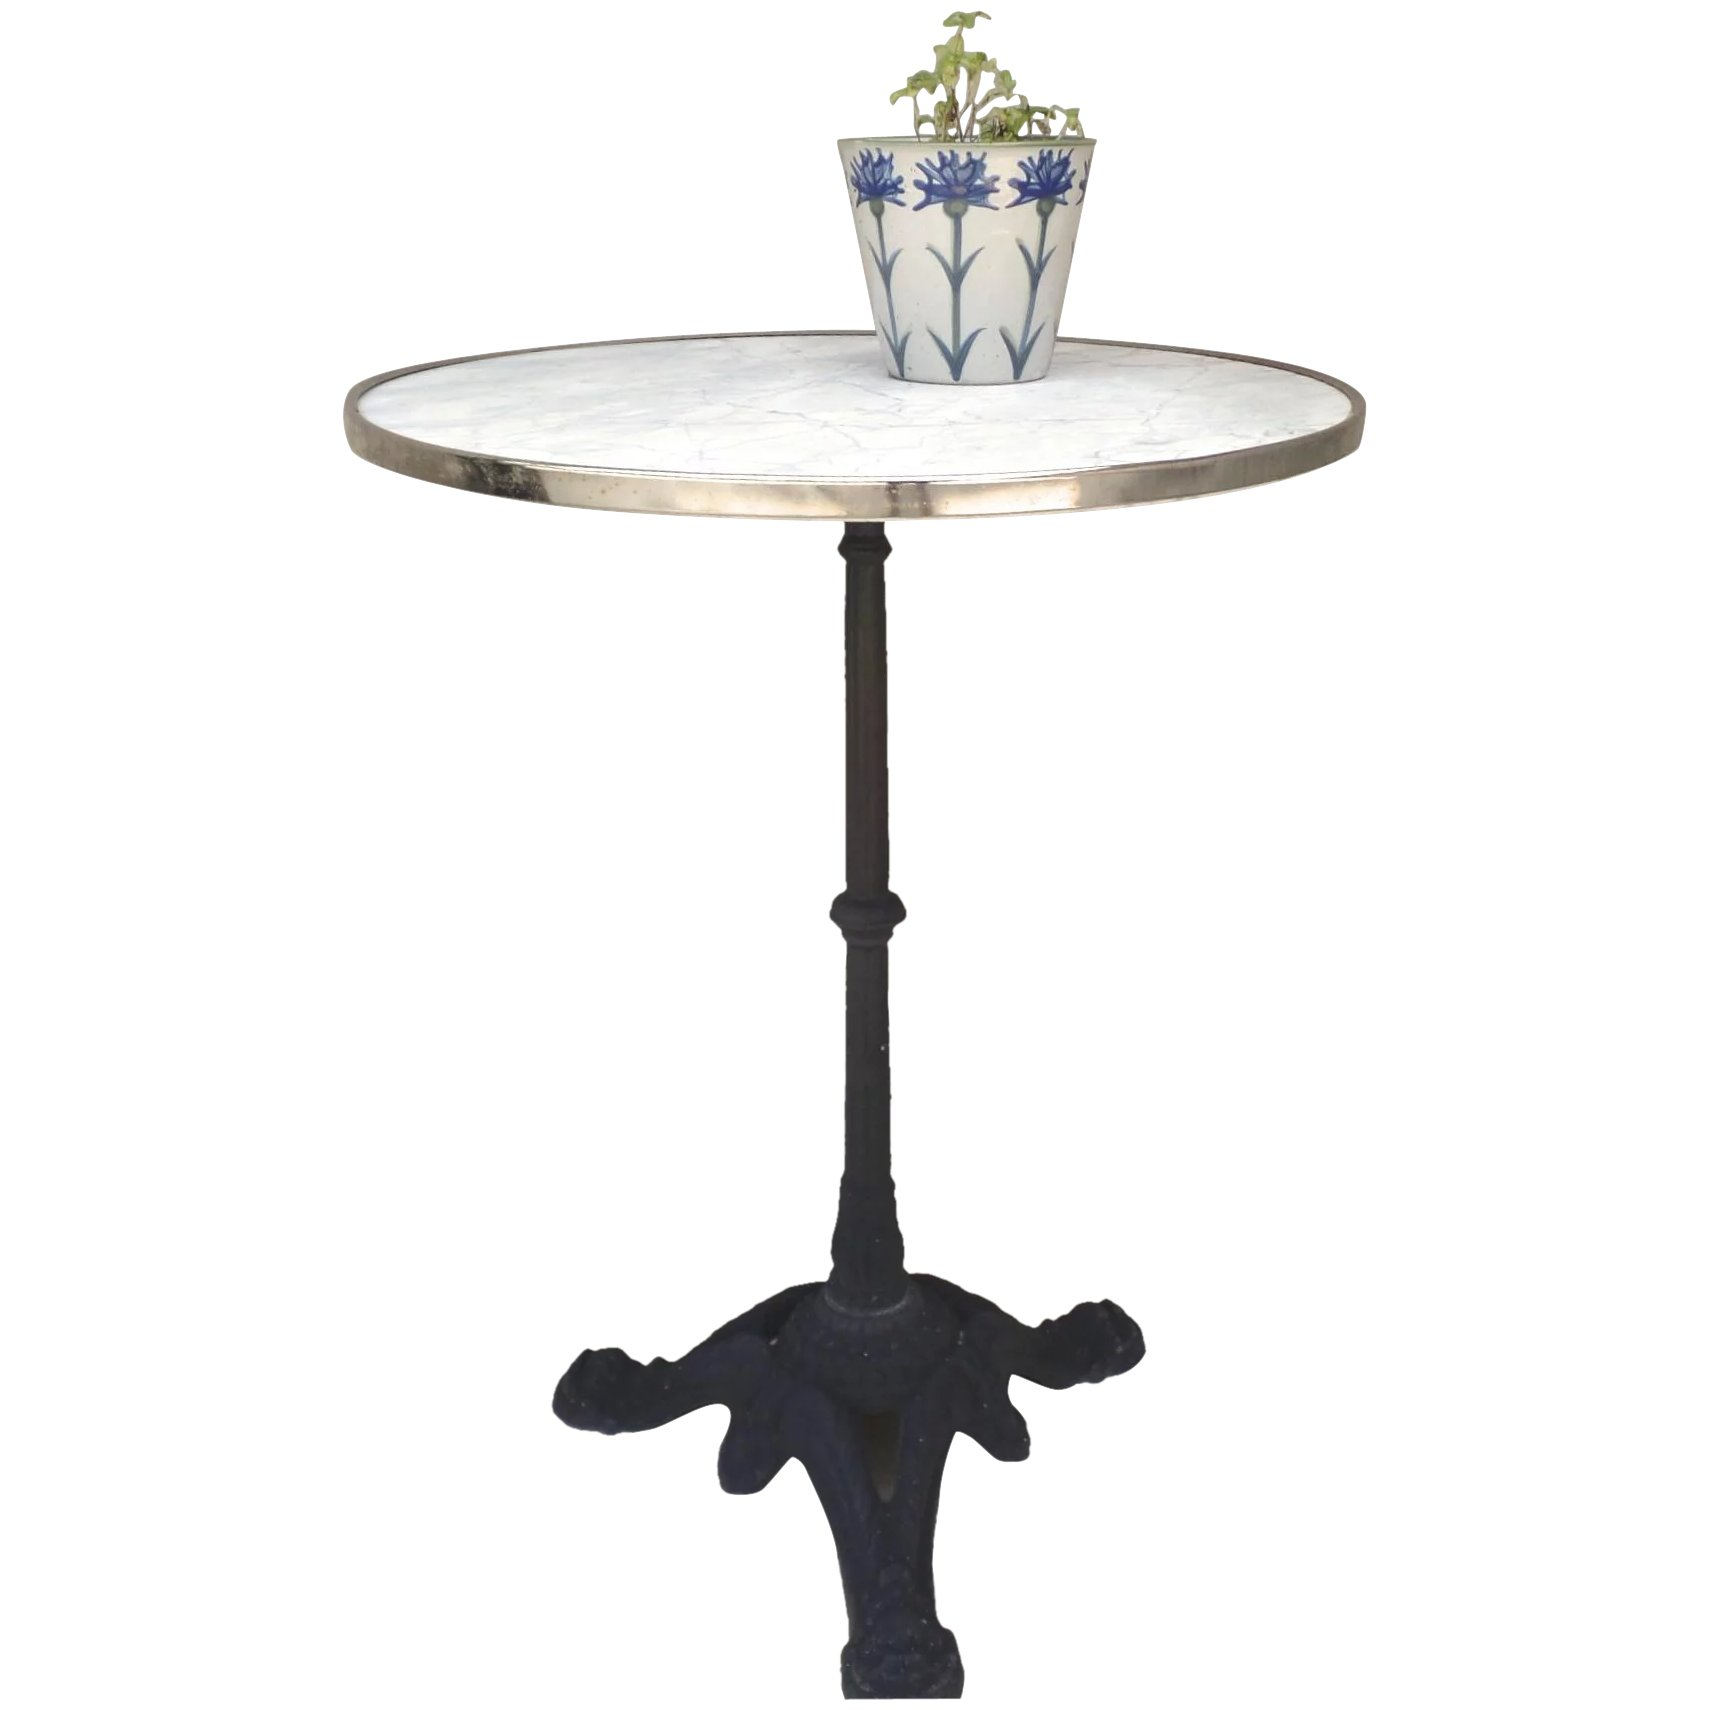 Vintage Small Bistro Table With Marble Top Cast Iron Base Black Tulip Antiques Ltd Ruby Lane